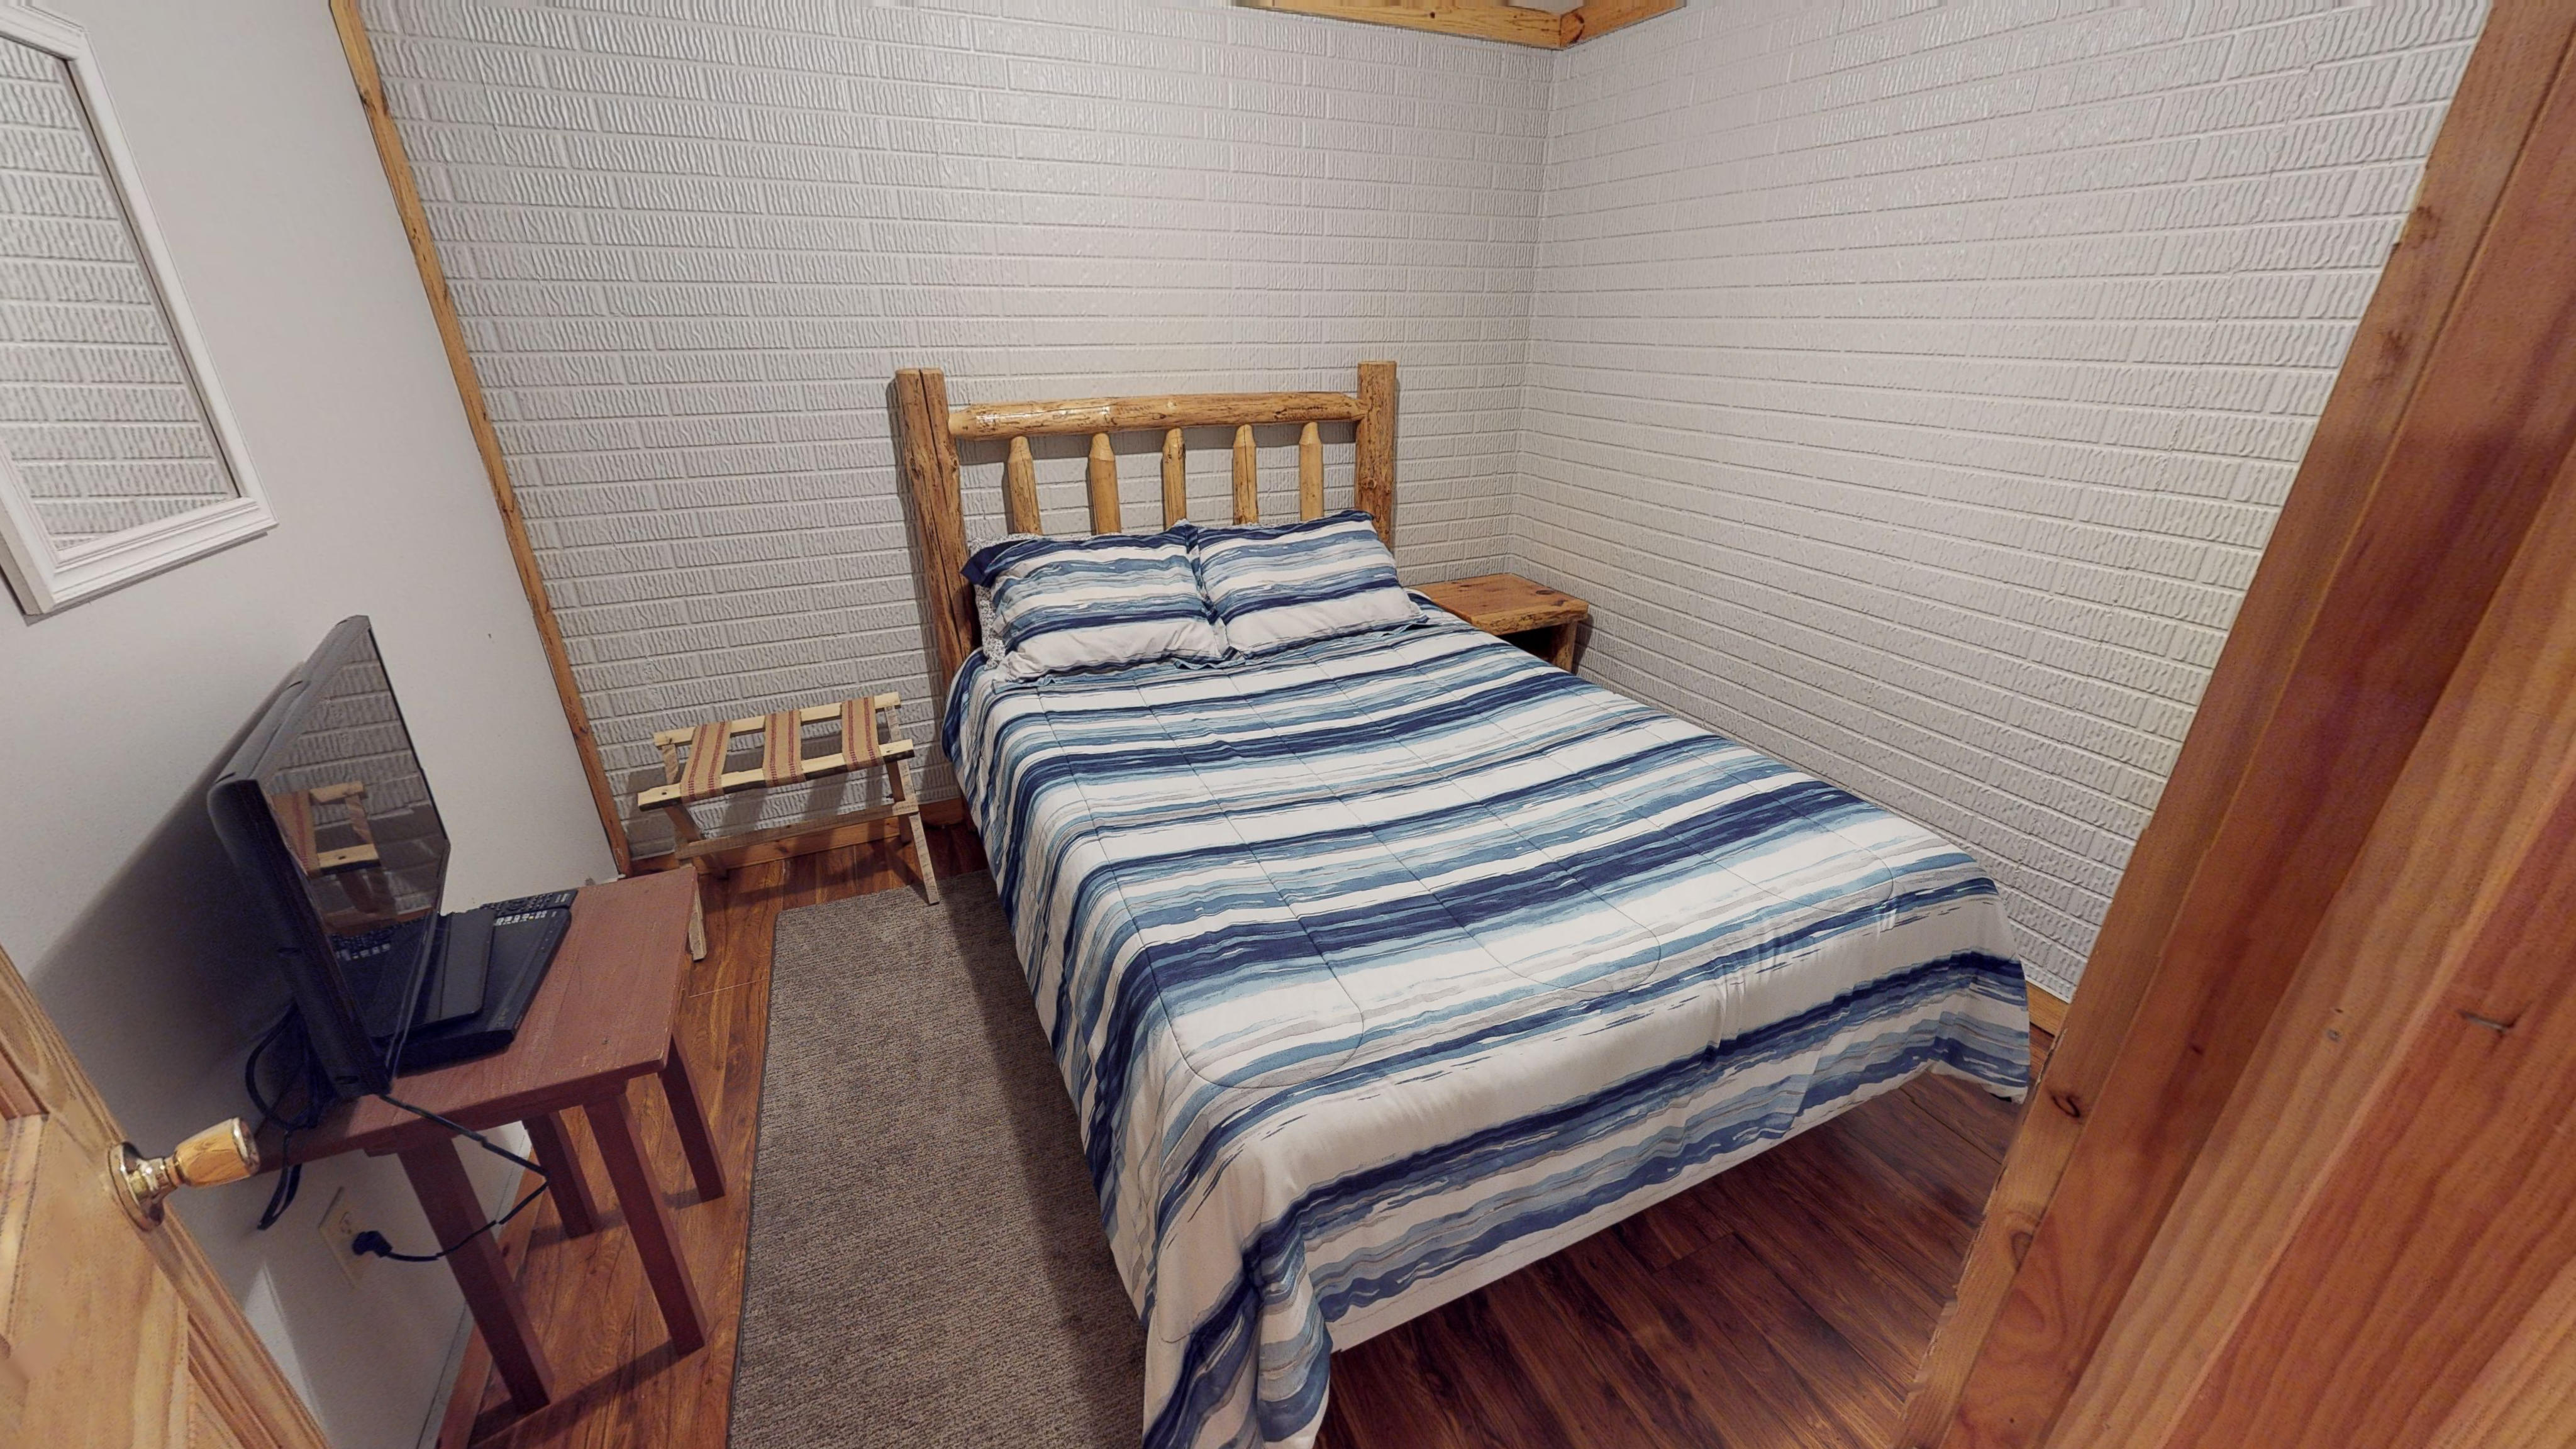 Photo 619_10255.jpg - Located on lower level, log queen bed